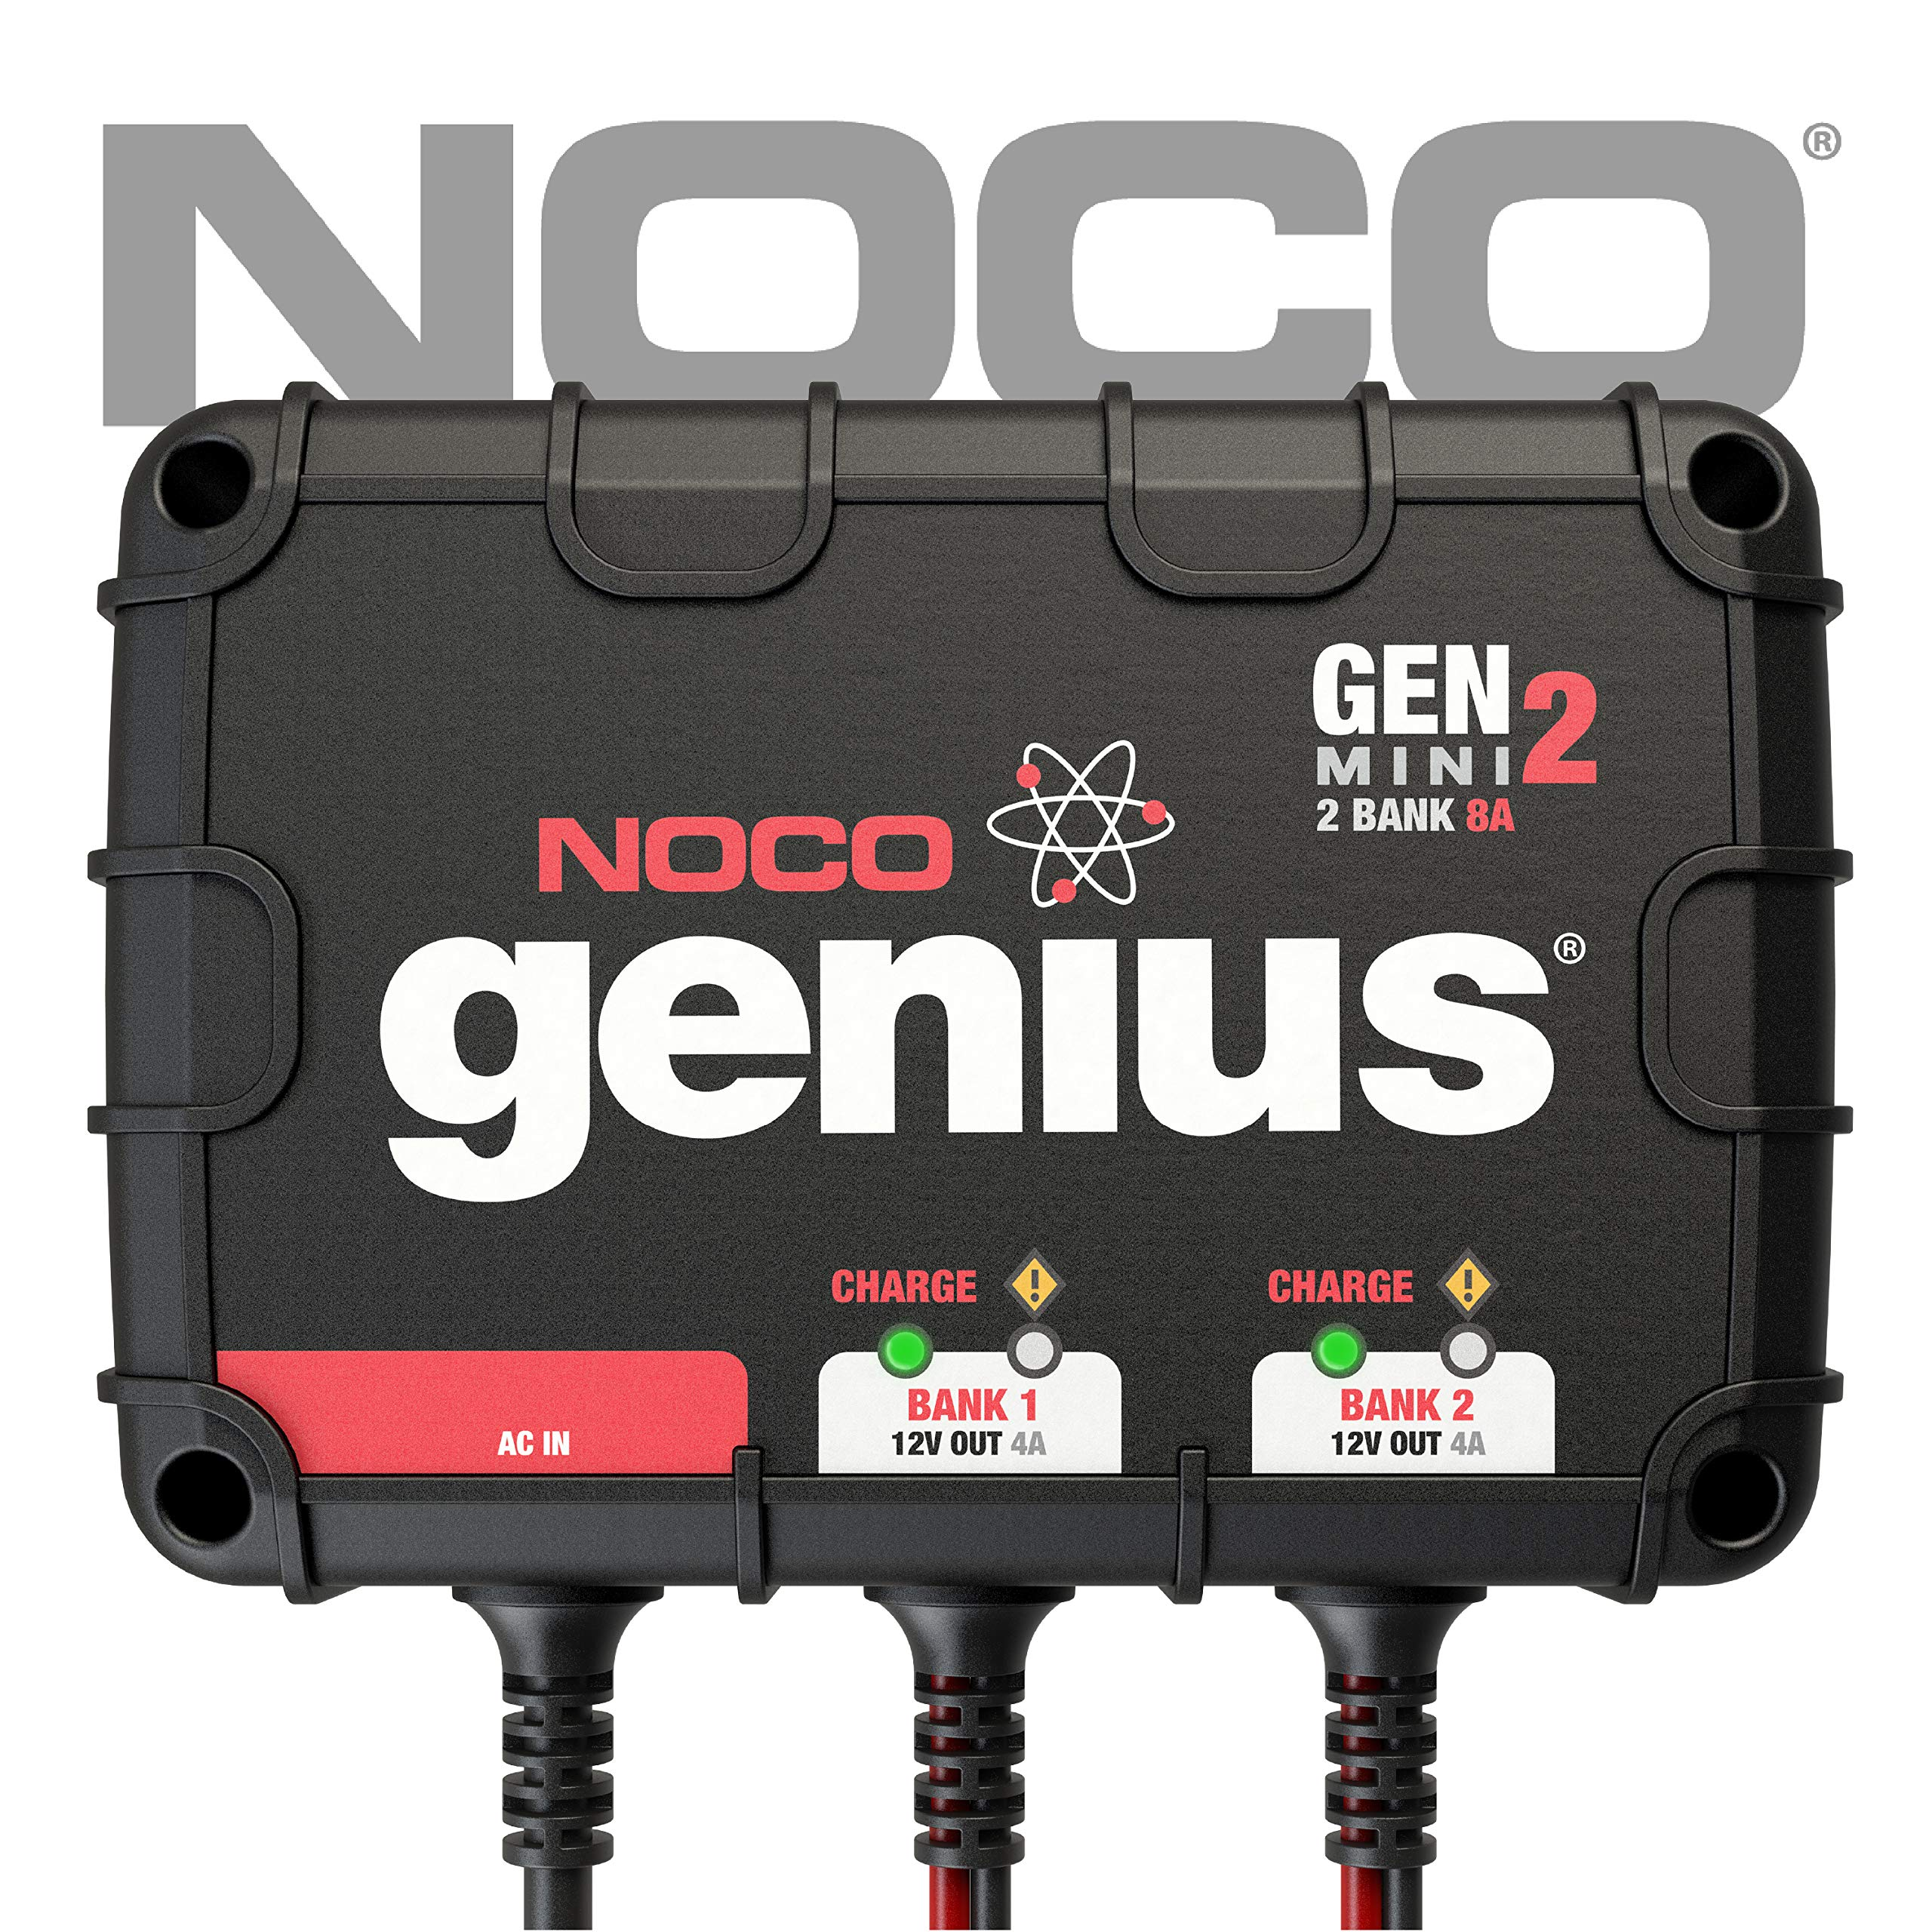 NOCO Genius GENM2 8 Amp 2-Bank On-Board Battery Charger by NOCO